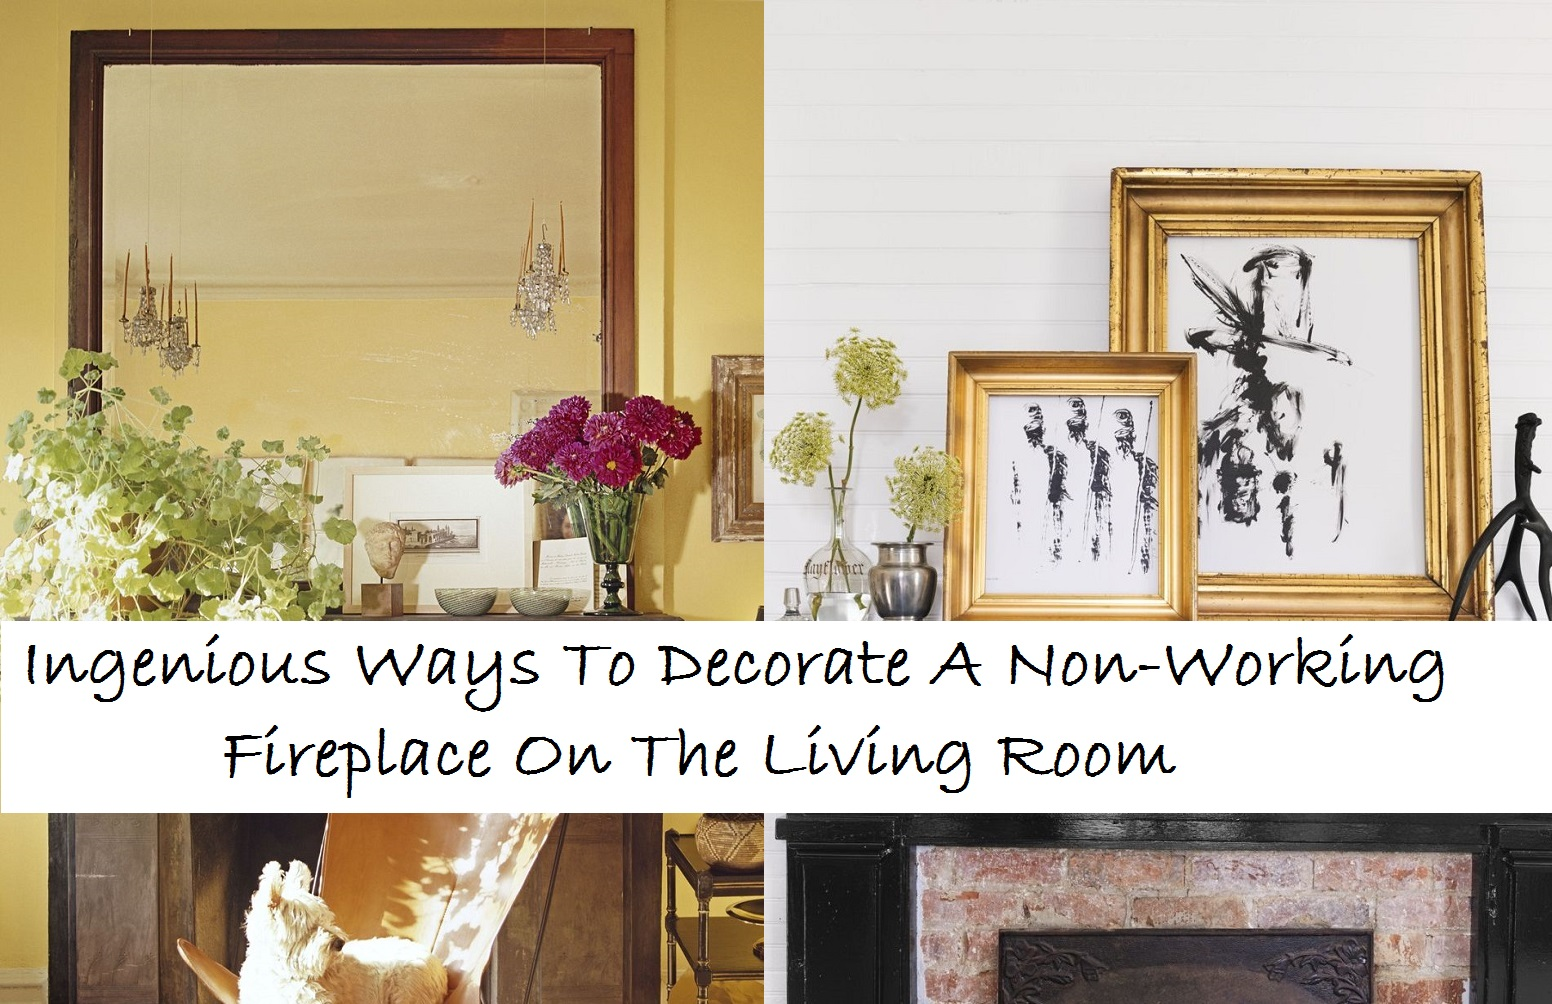 Ingenious Ways To Decorate A Non-Working Fireplace On The Living Room